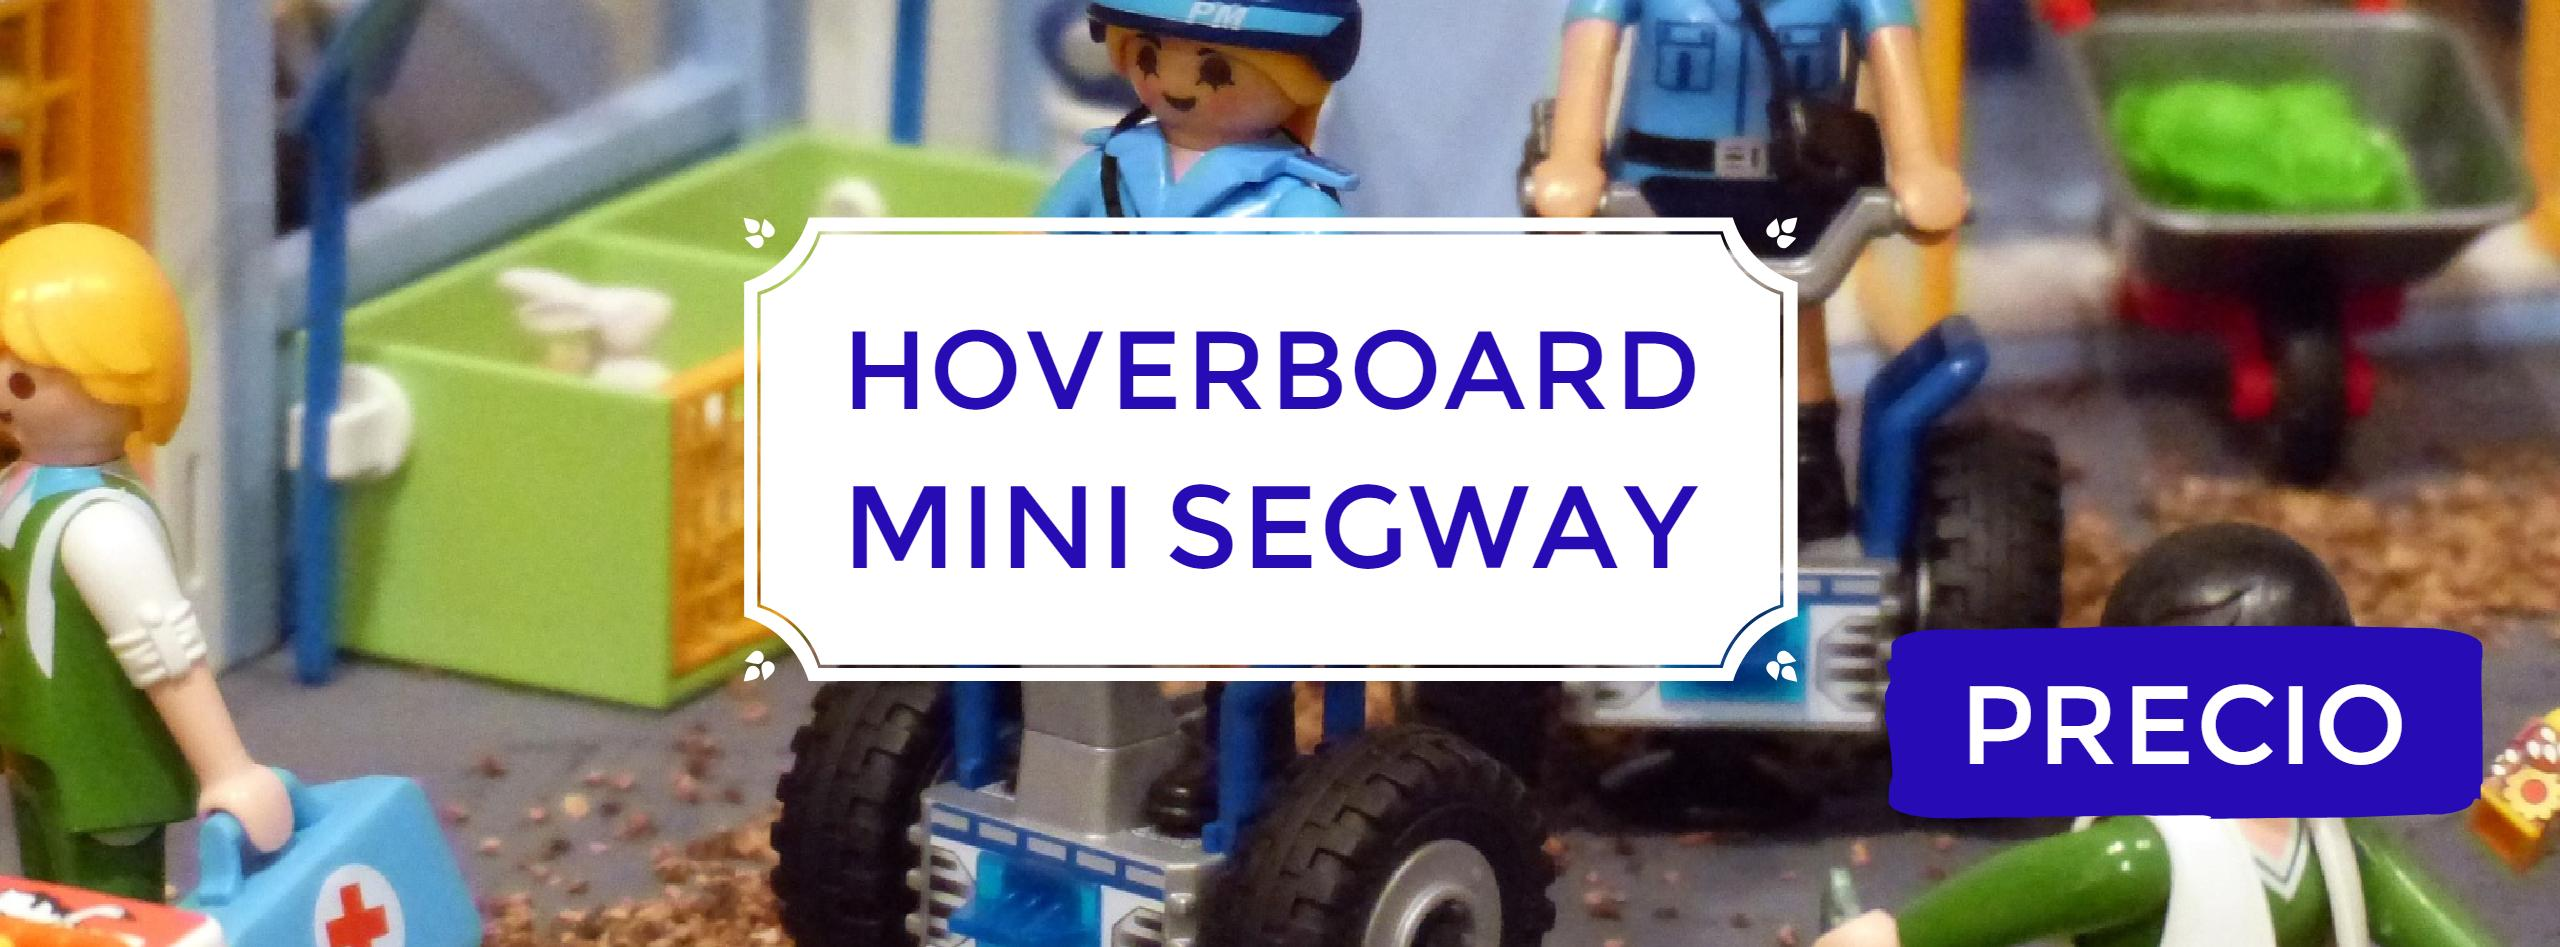 - Hoverboard mini Segway